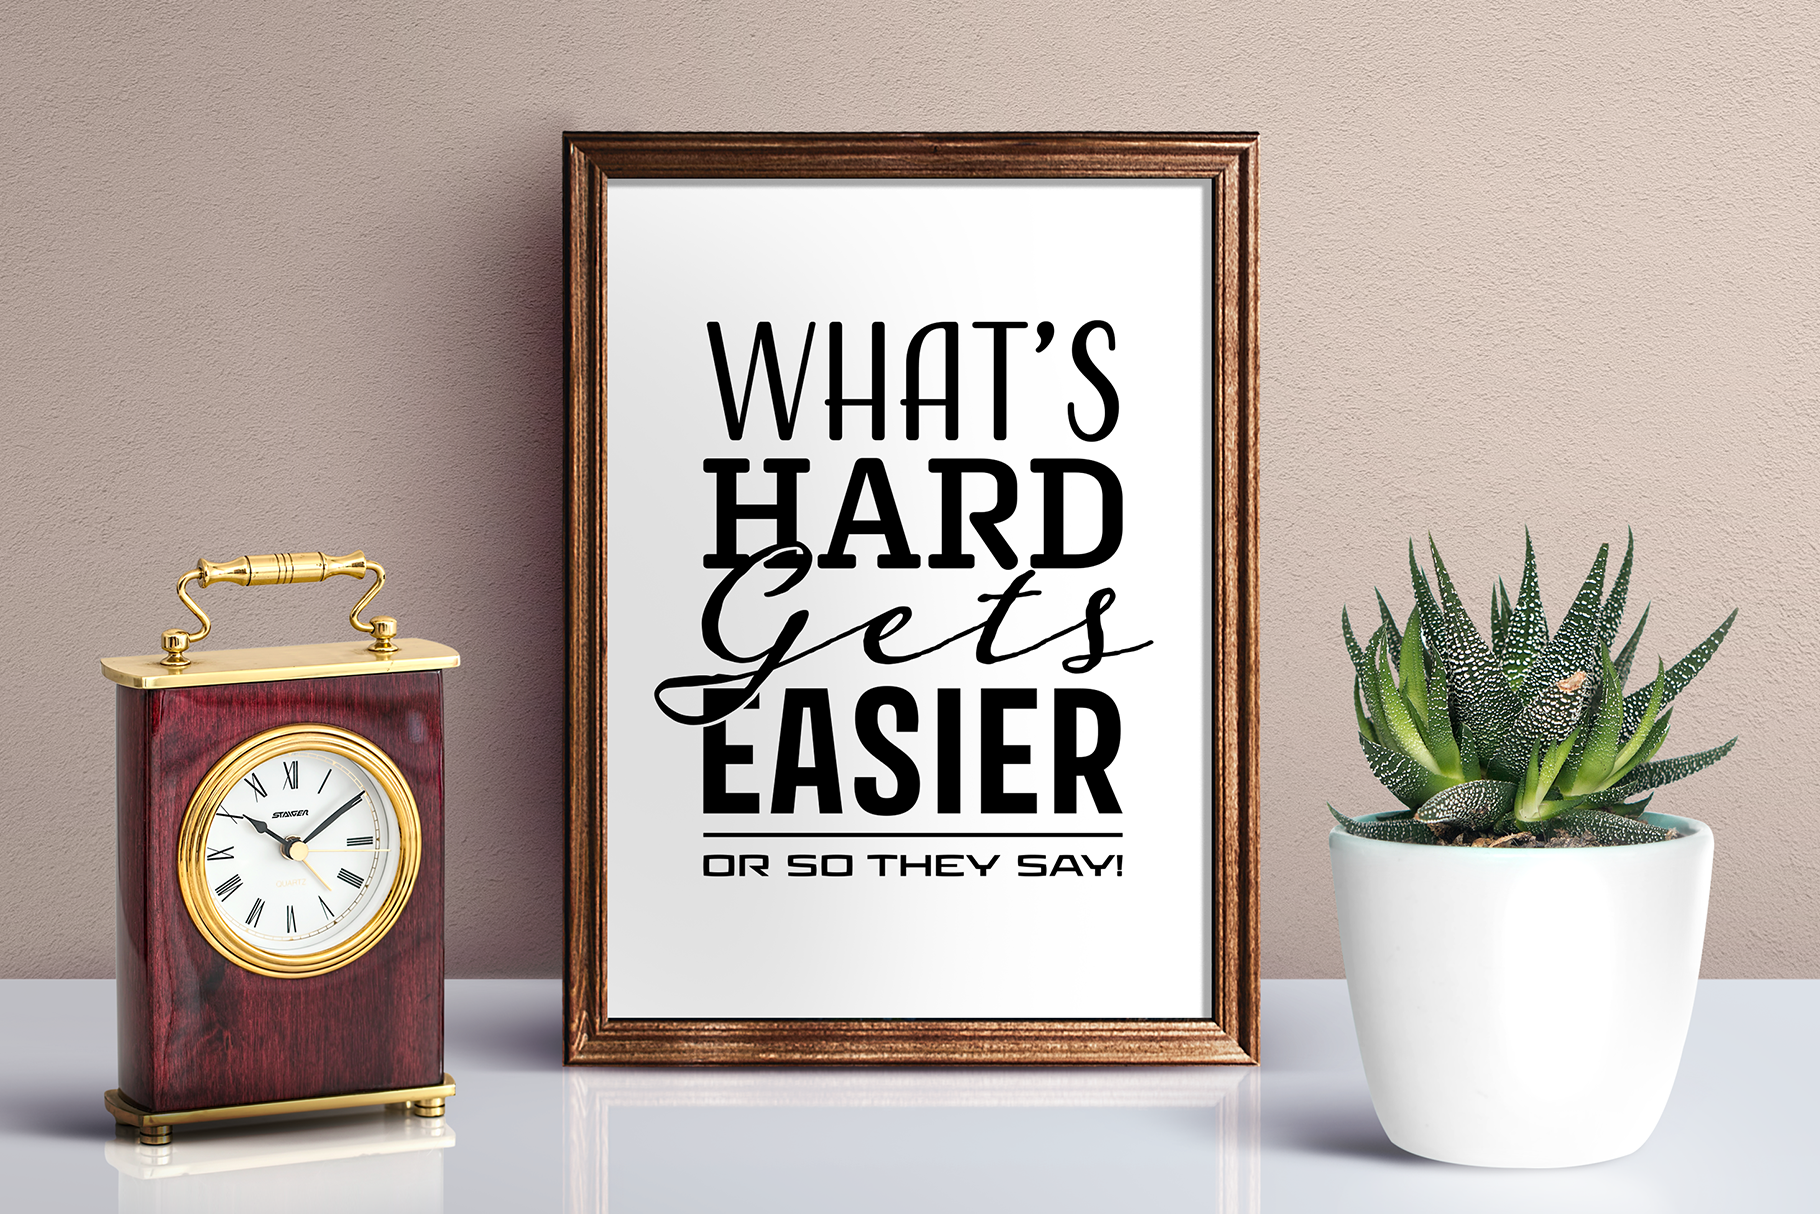 Whats Hard Gets Easier example image 1